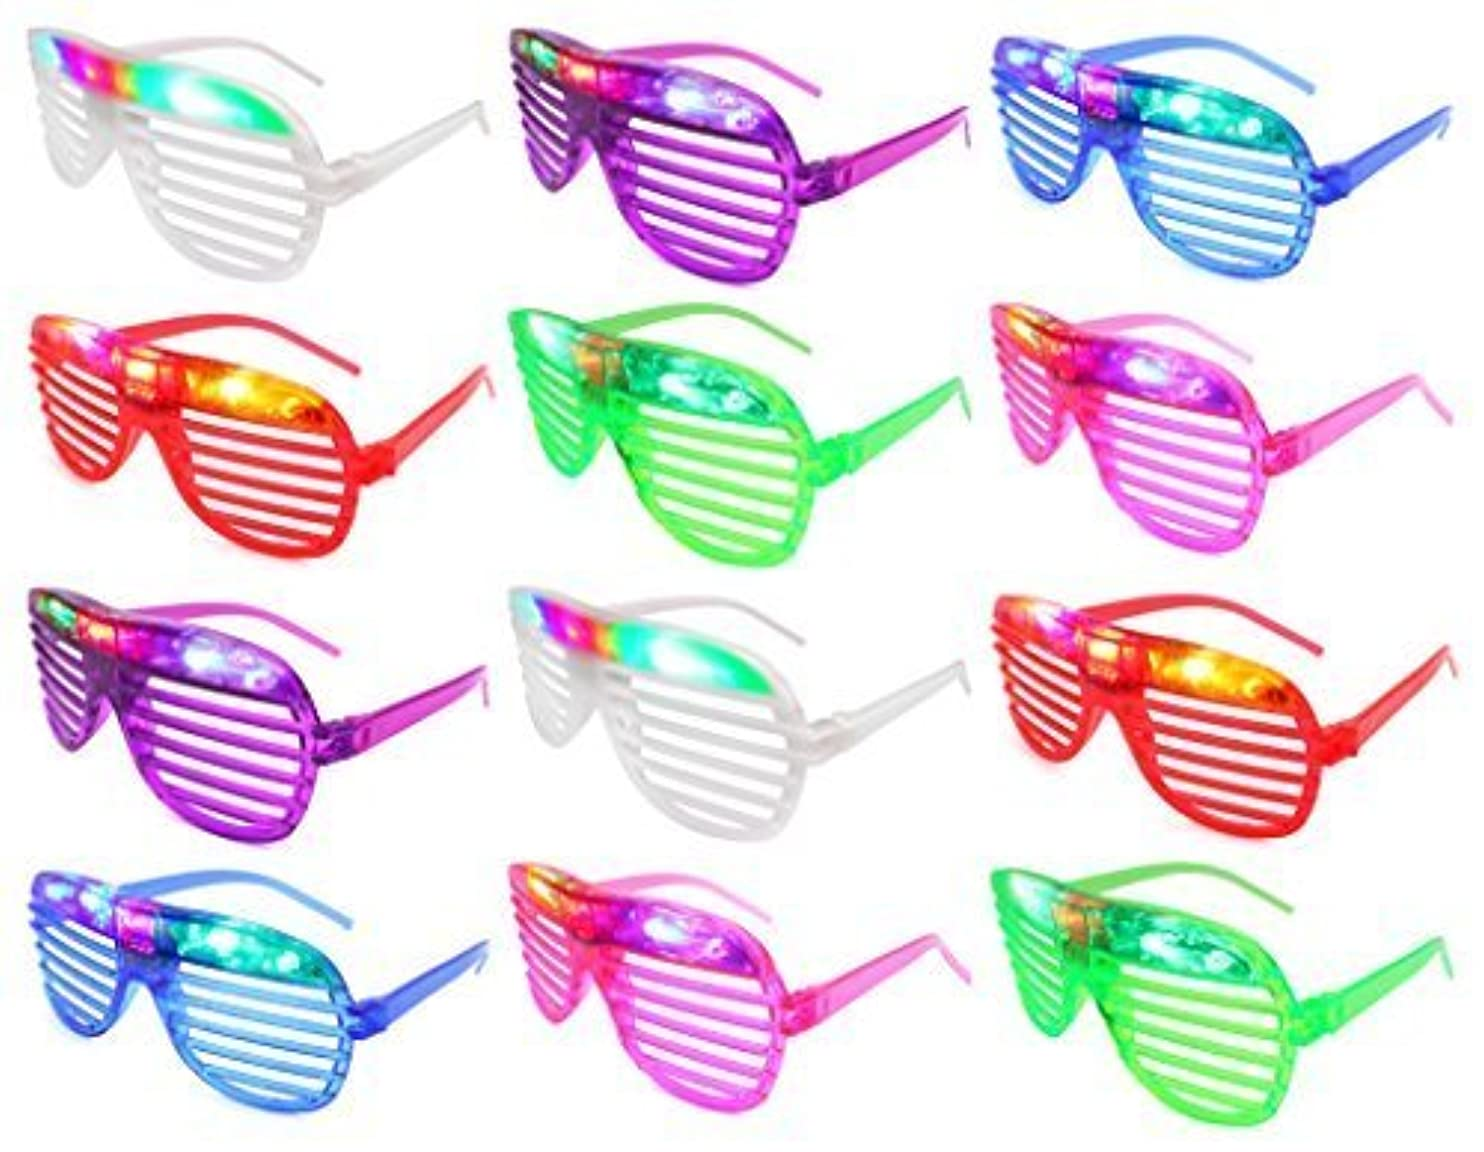 Set of 12 VT Flashing LED Multi Color 'Slotted Shutter' Light Up Show Party Favor Toy Glasses (Colors May Vary) ejtbkbqcoxp90